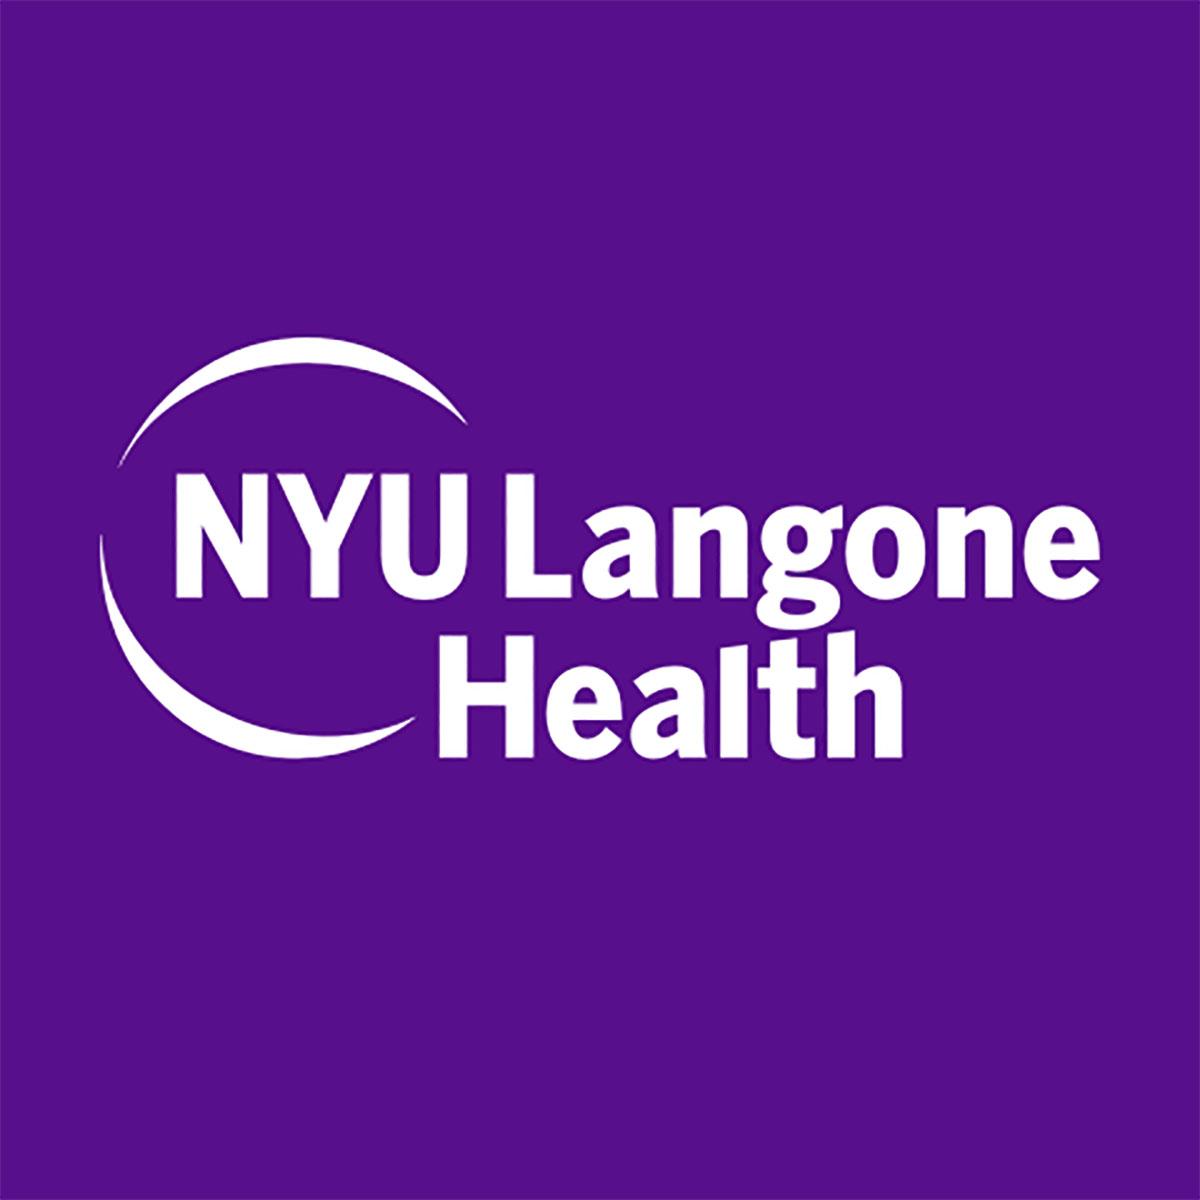 nyu langone health powerpoint template  Office of Science